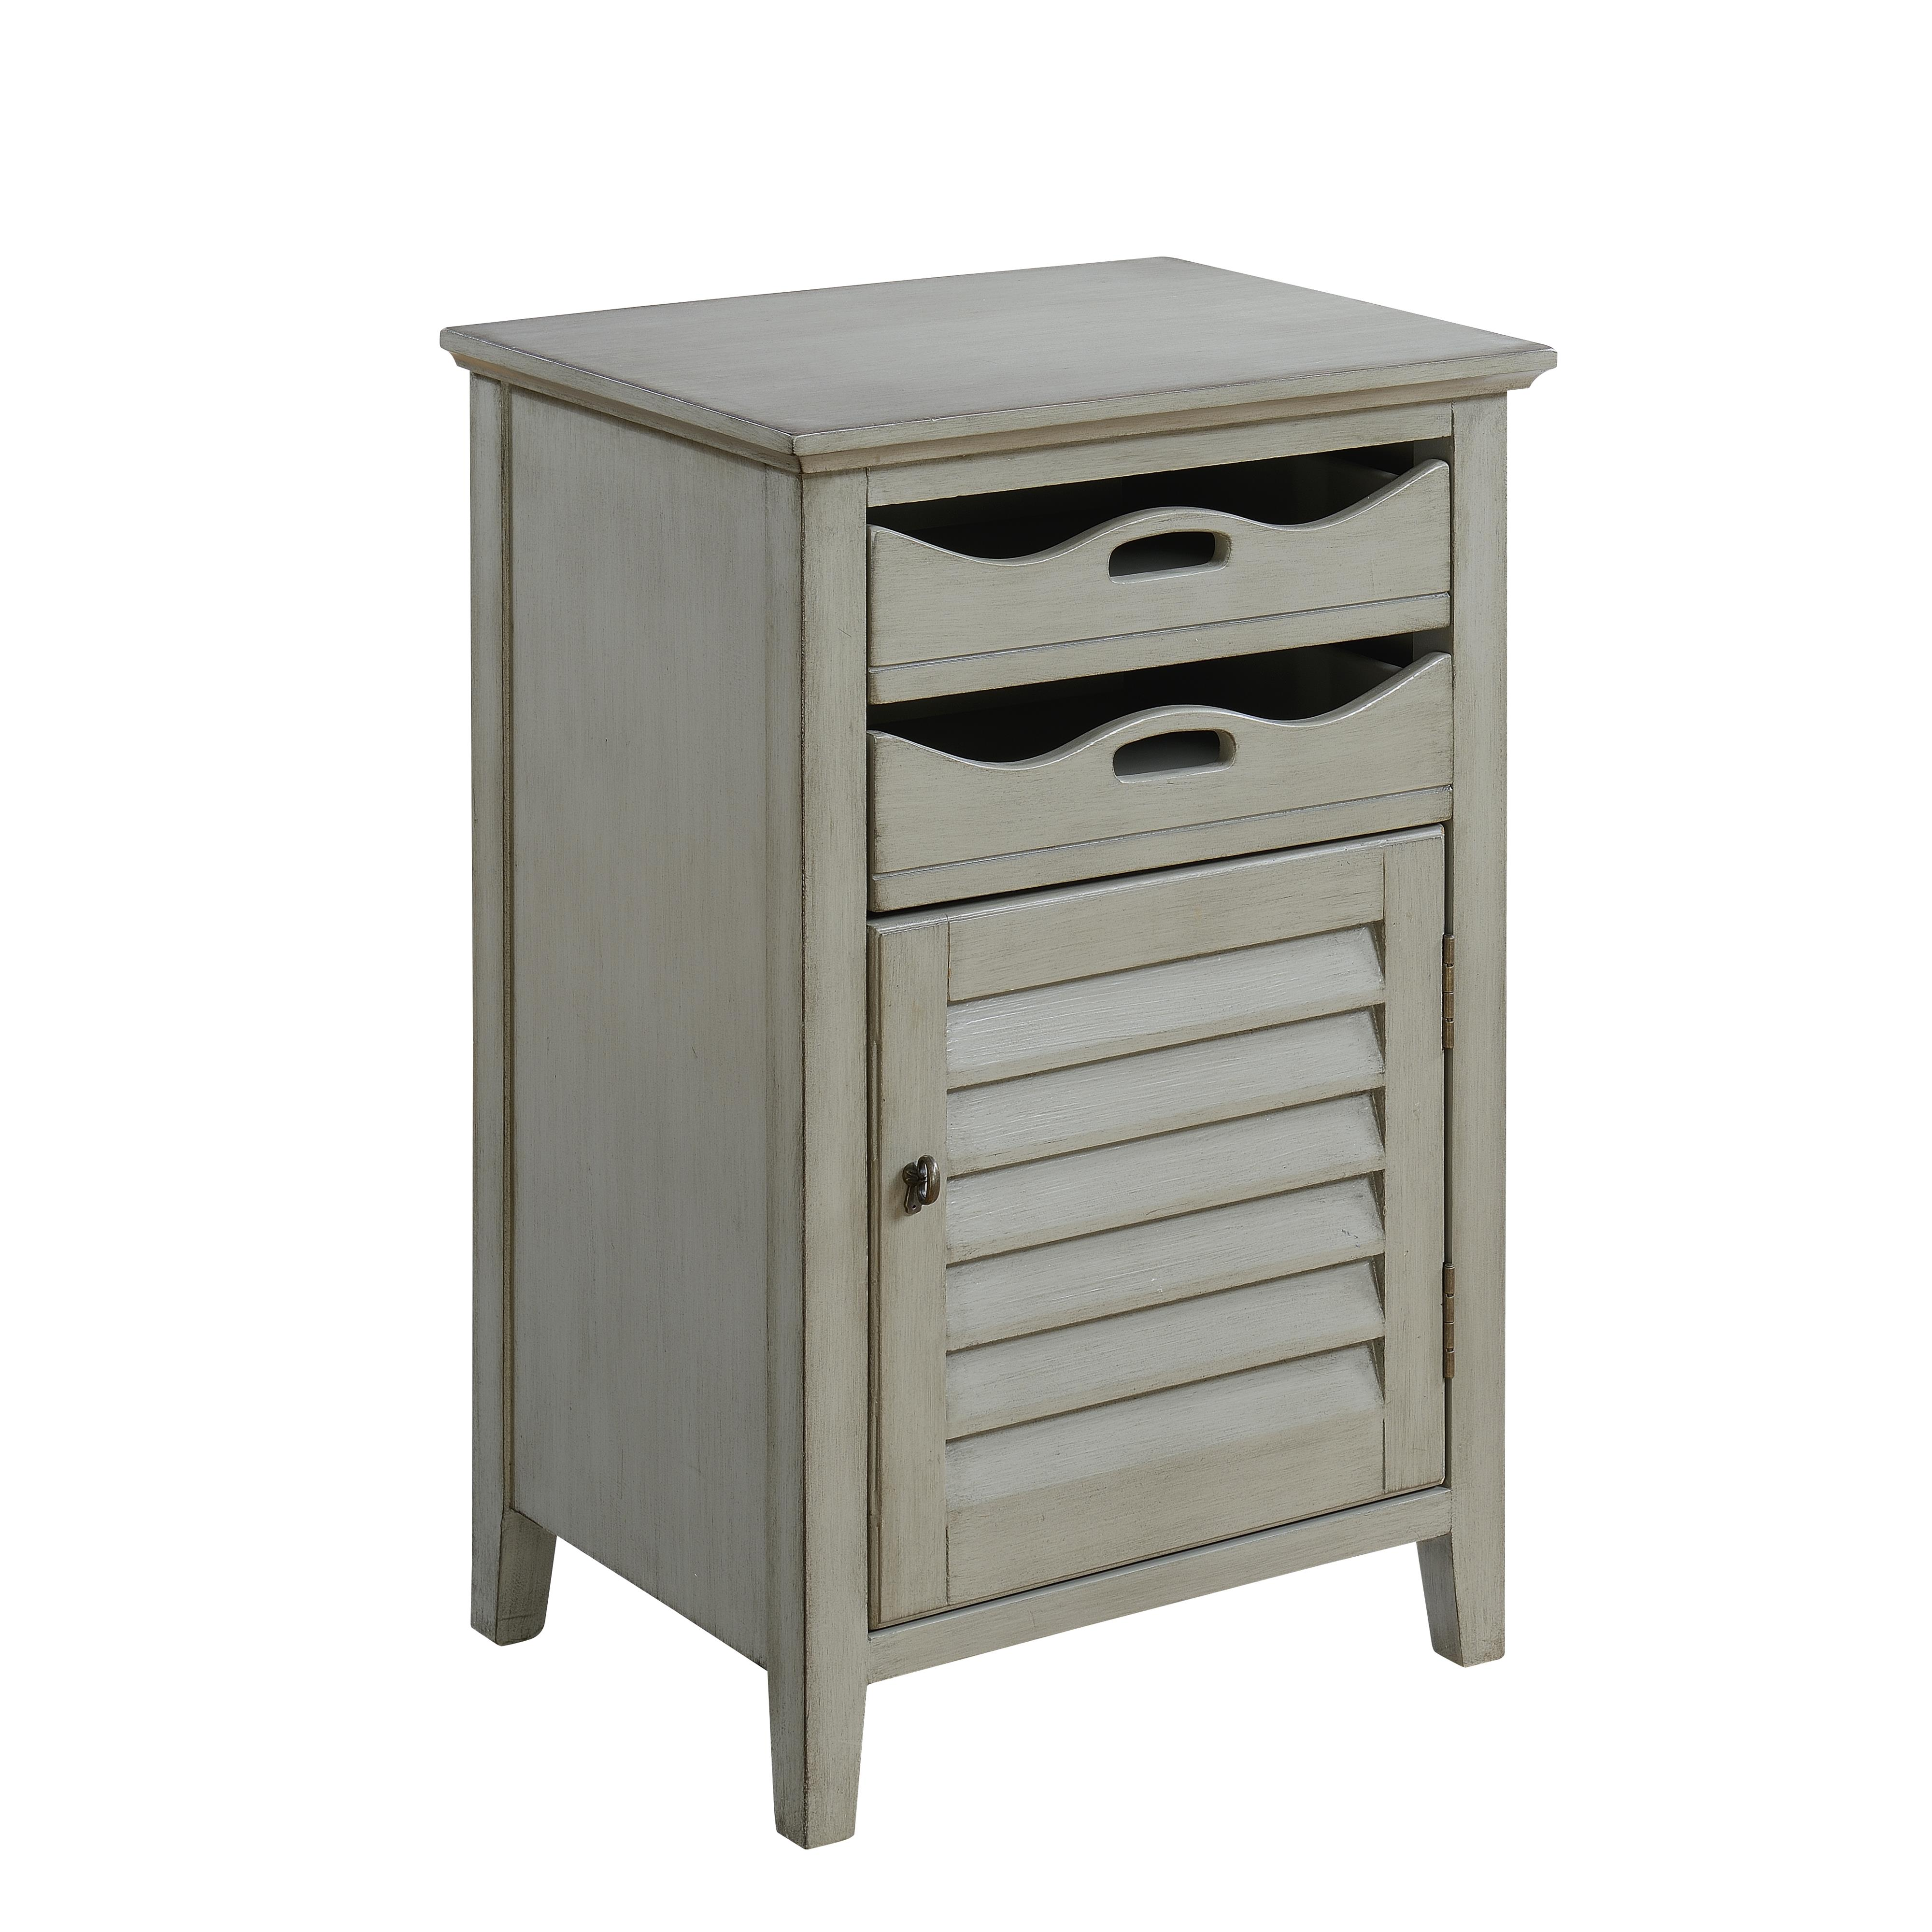 Coast to Coast Accents One Door Two Drawer Cabinet by Coast to Coast Imports at Johnny Janosik